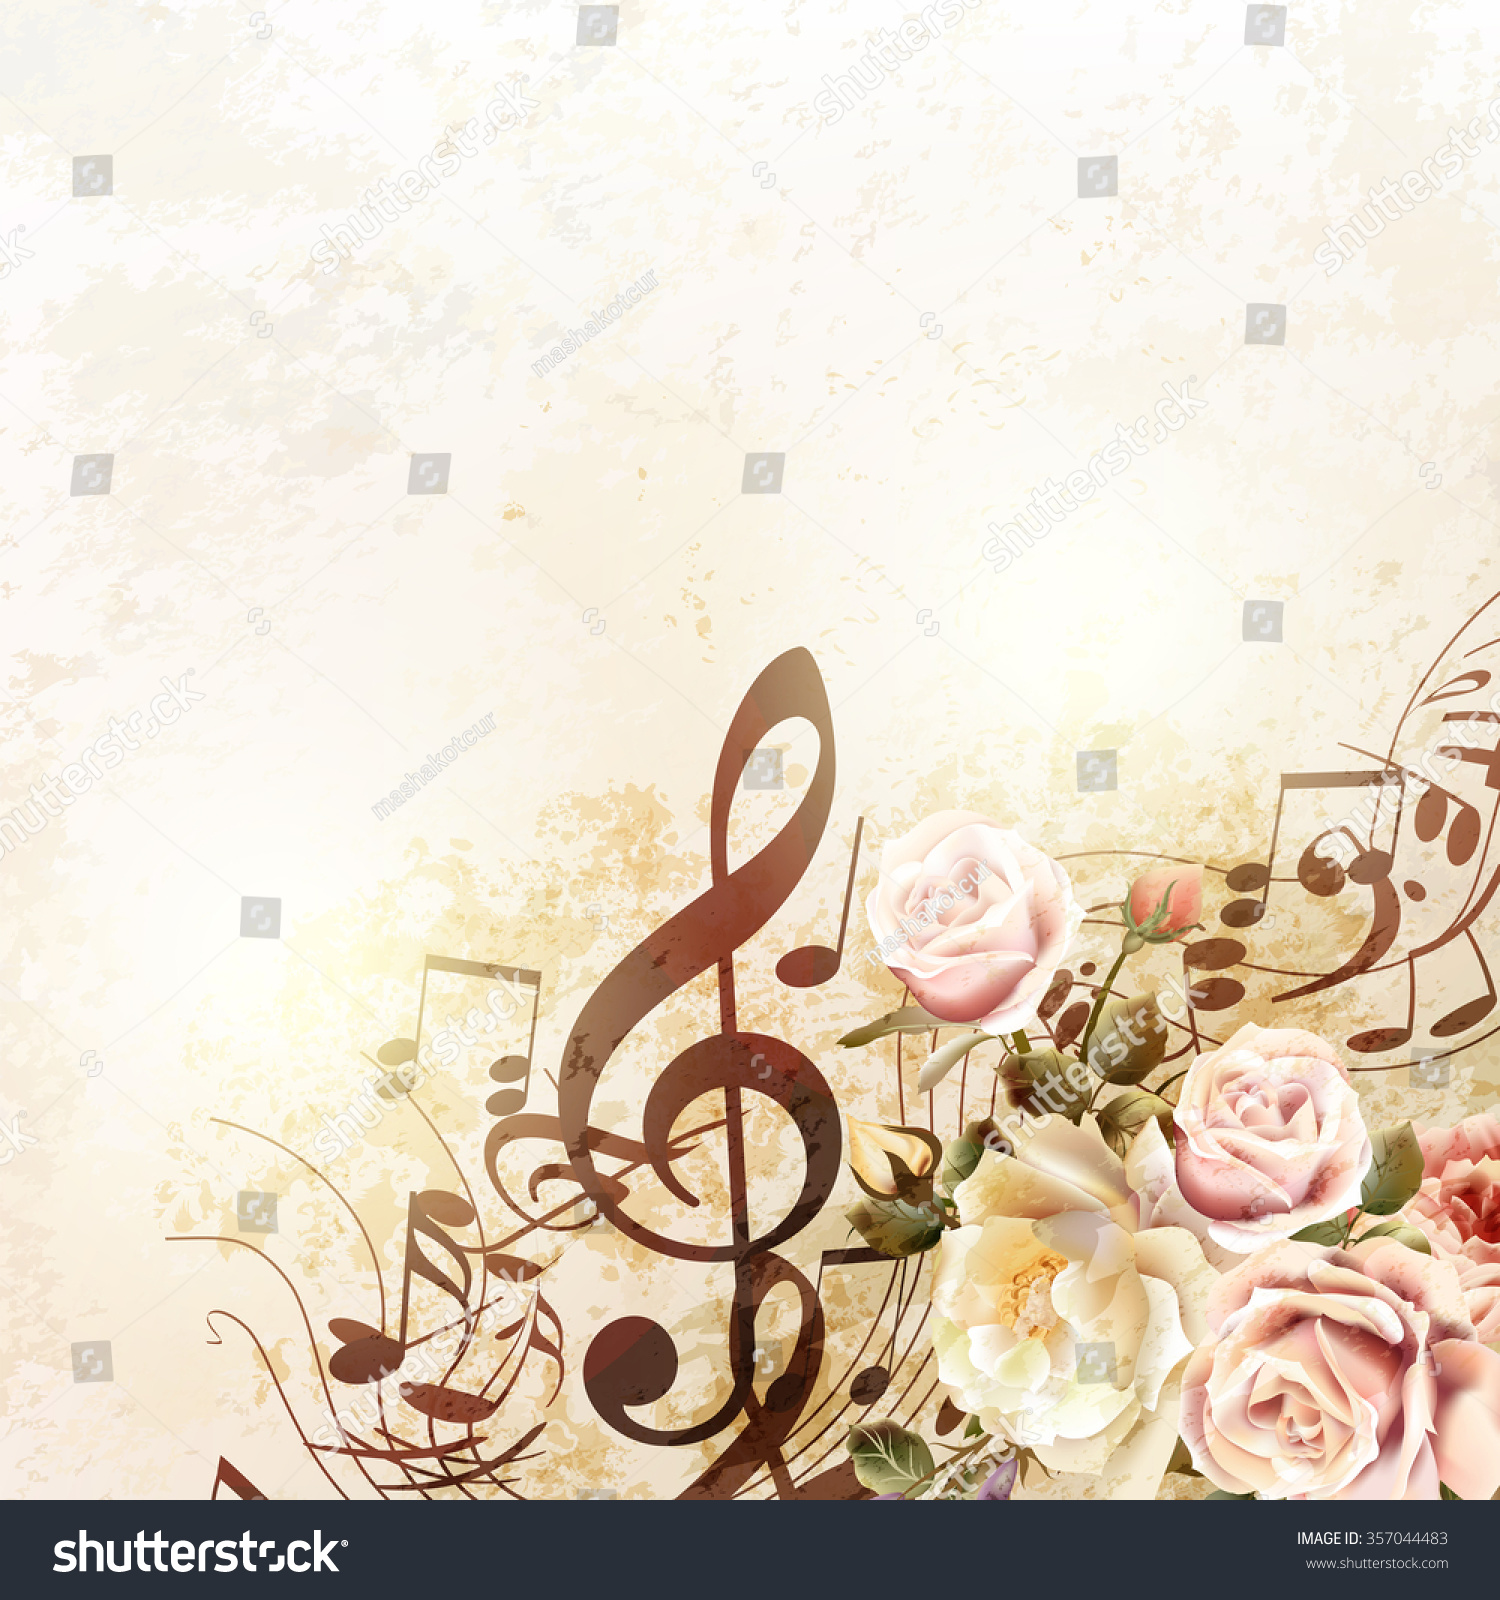 Grunge Vector Background Music Notes Rose Stock Vector